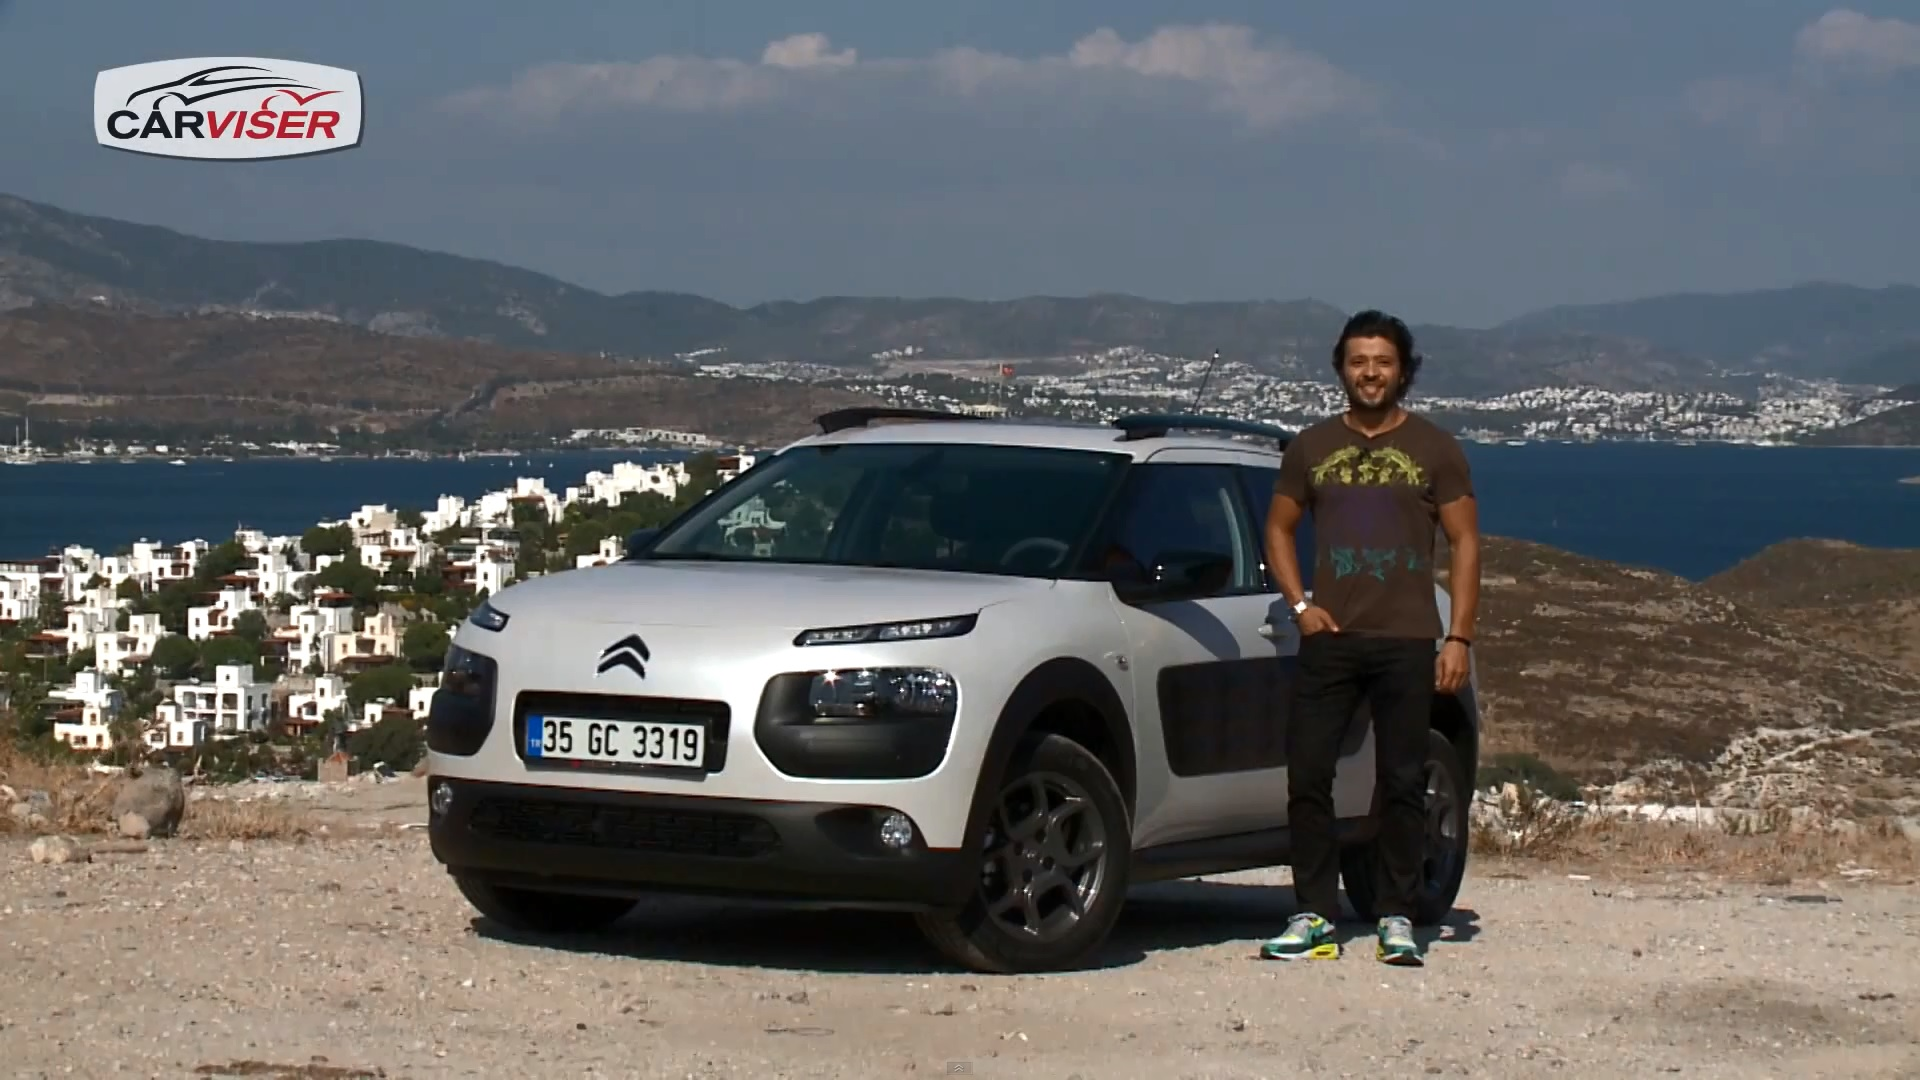 citroen c4 cactus test s r carviser. Black Bedroom Furniture Sets. Home Design Ideas